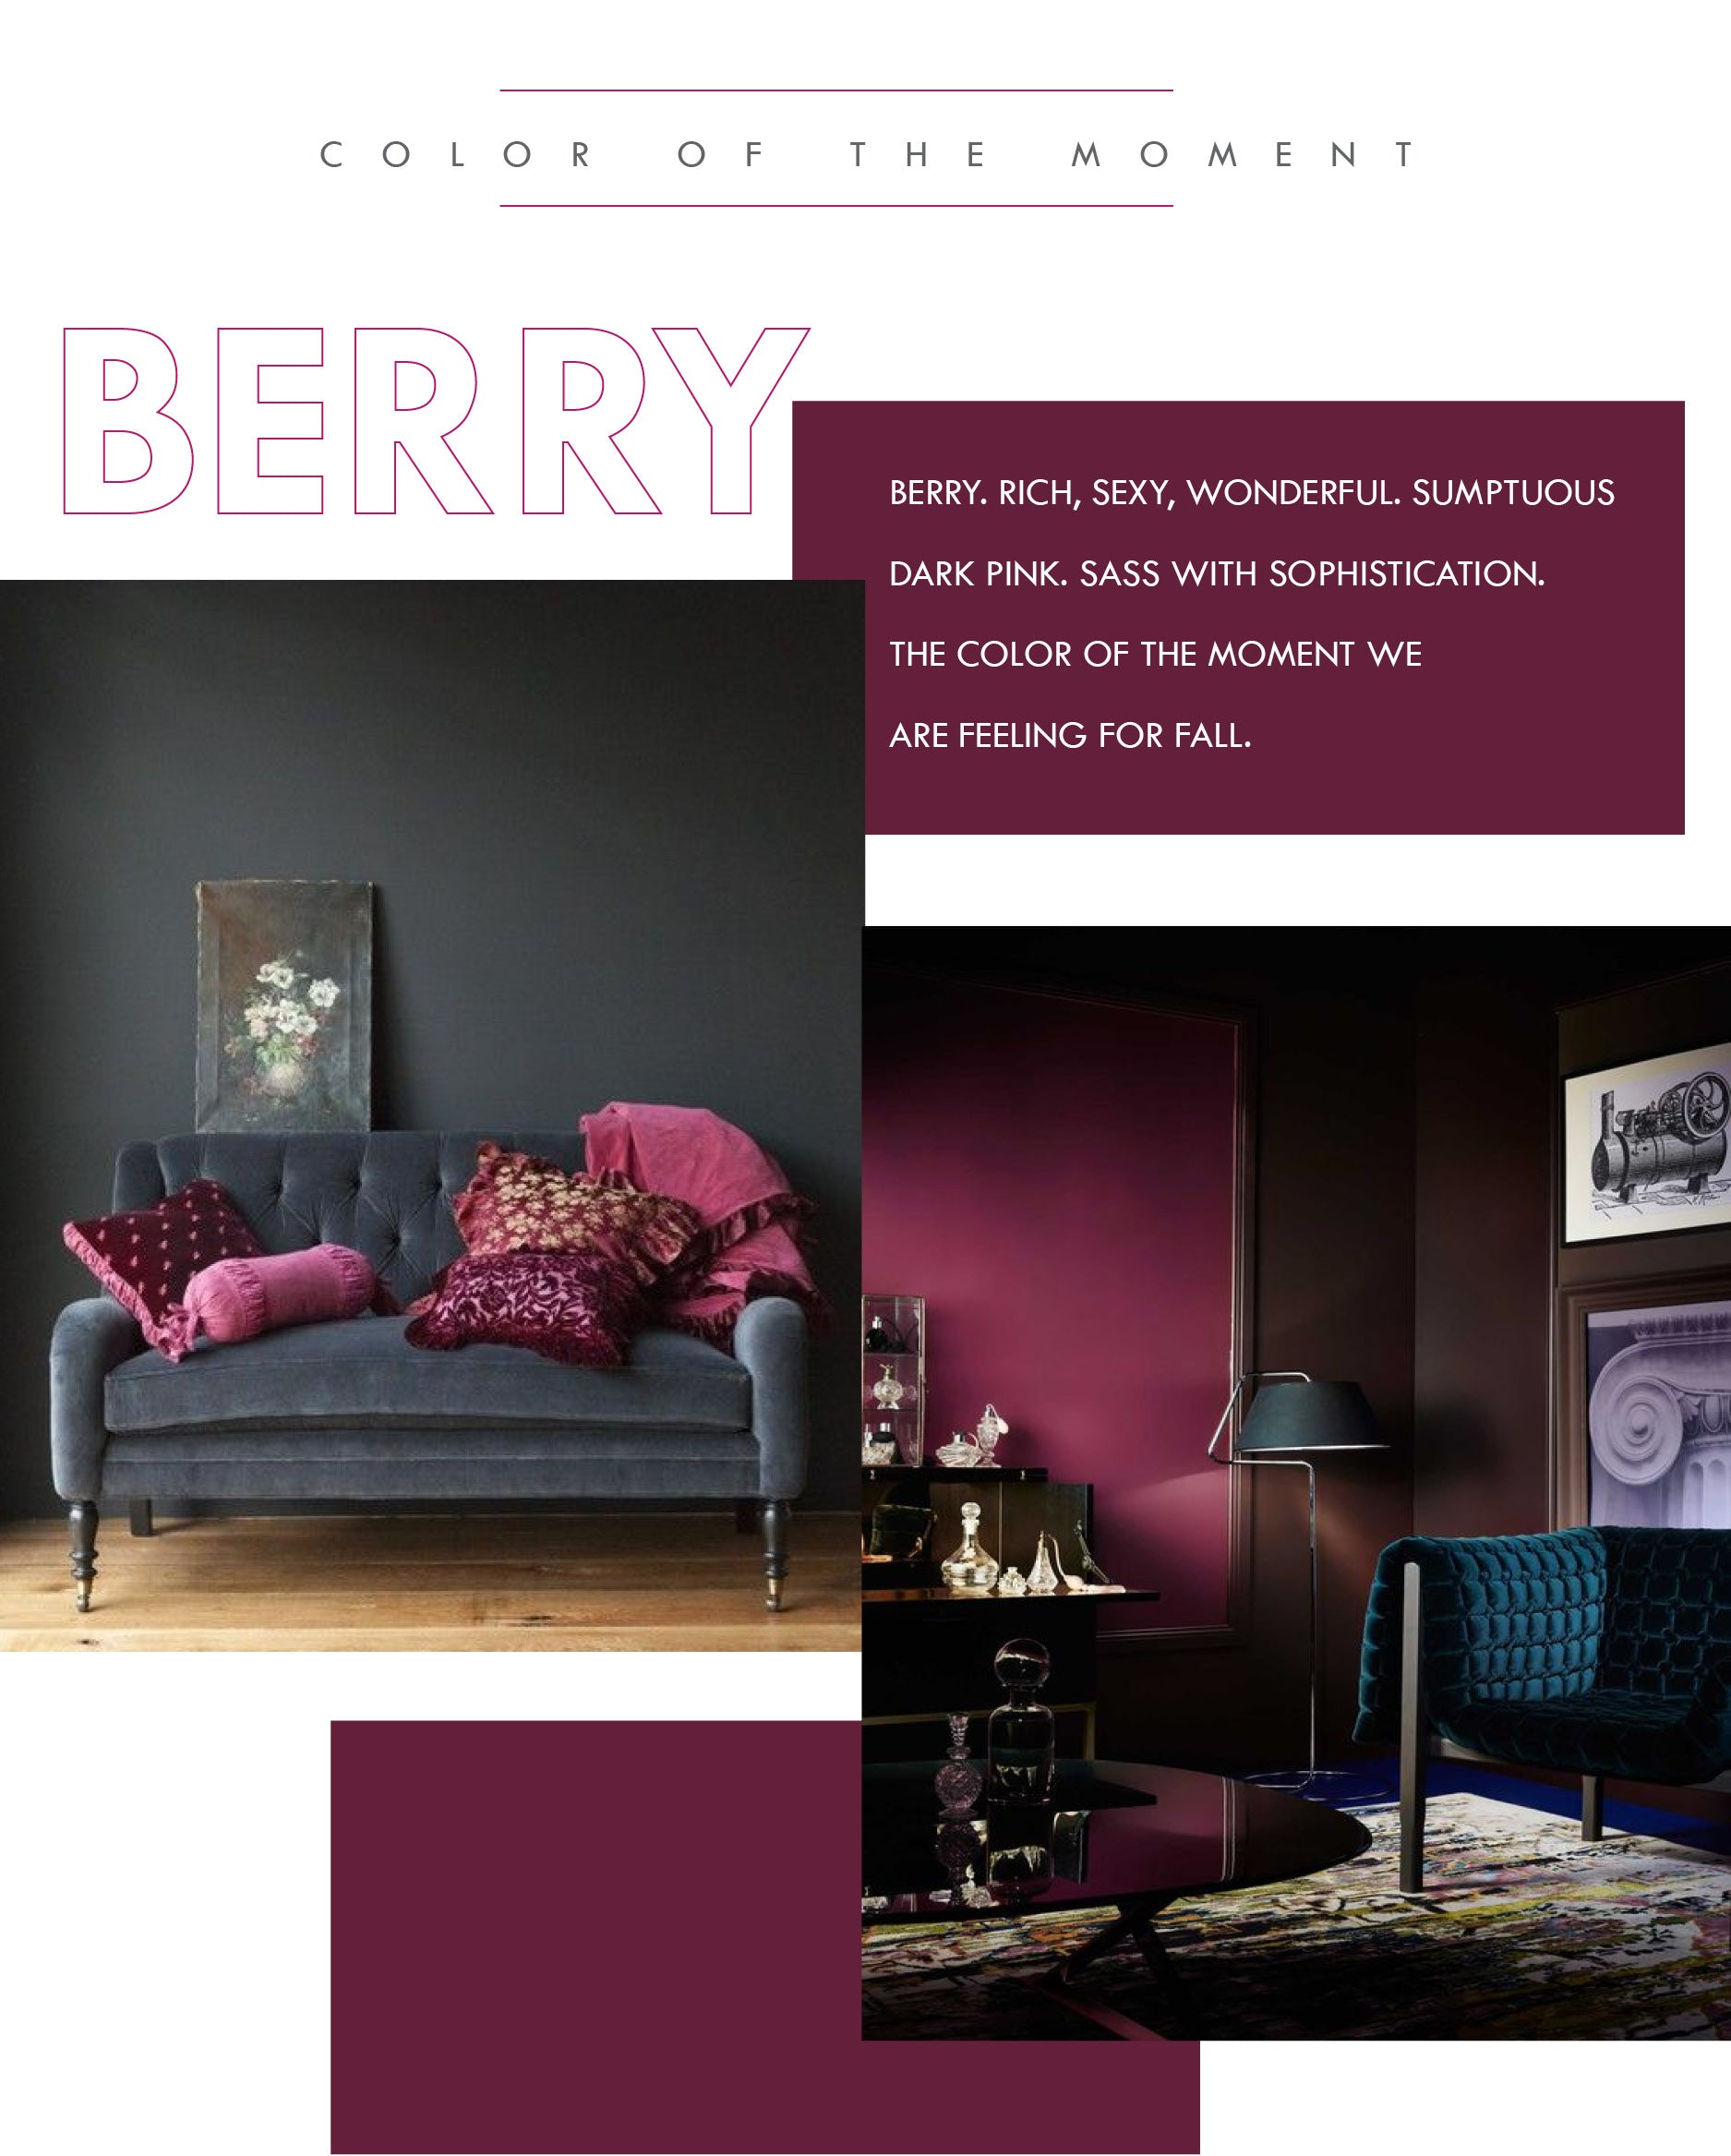 Berry Colored Interior Design ideas